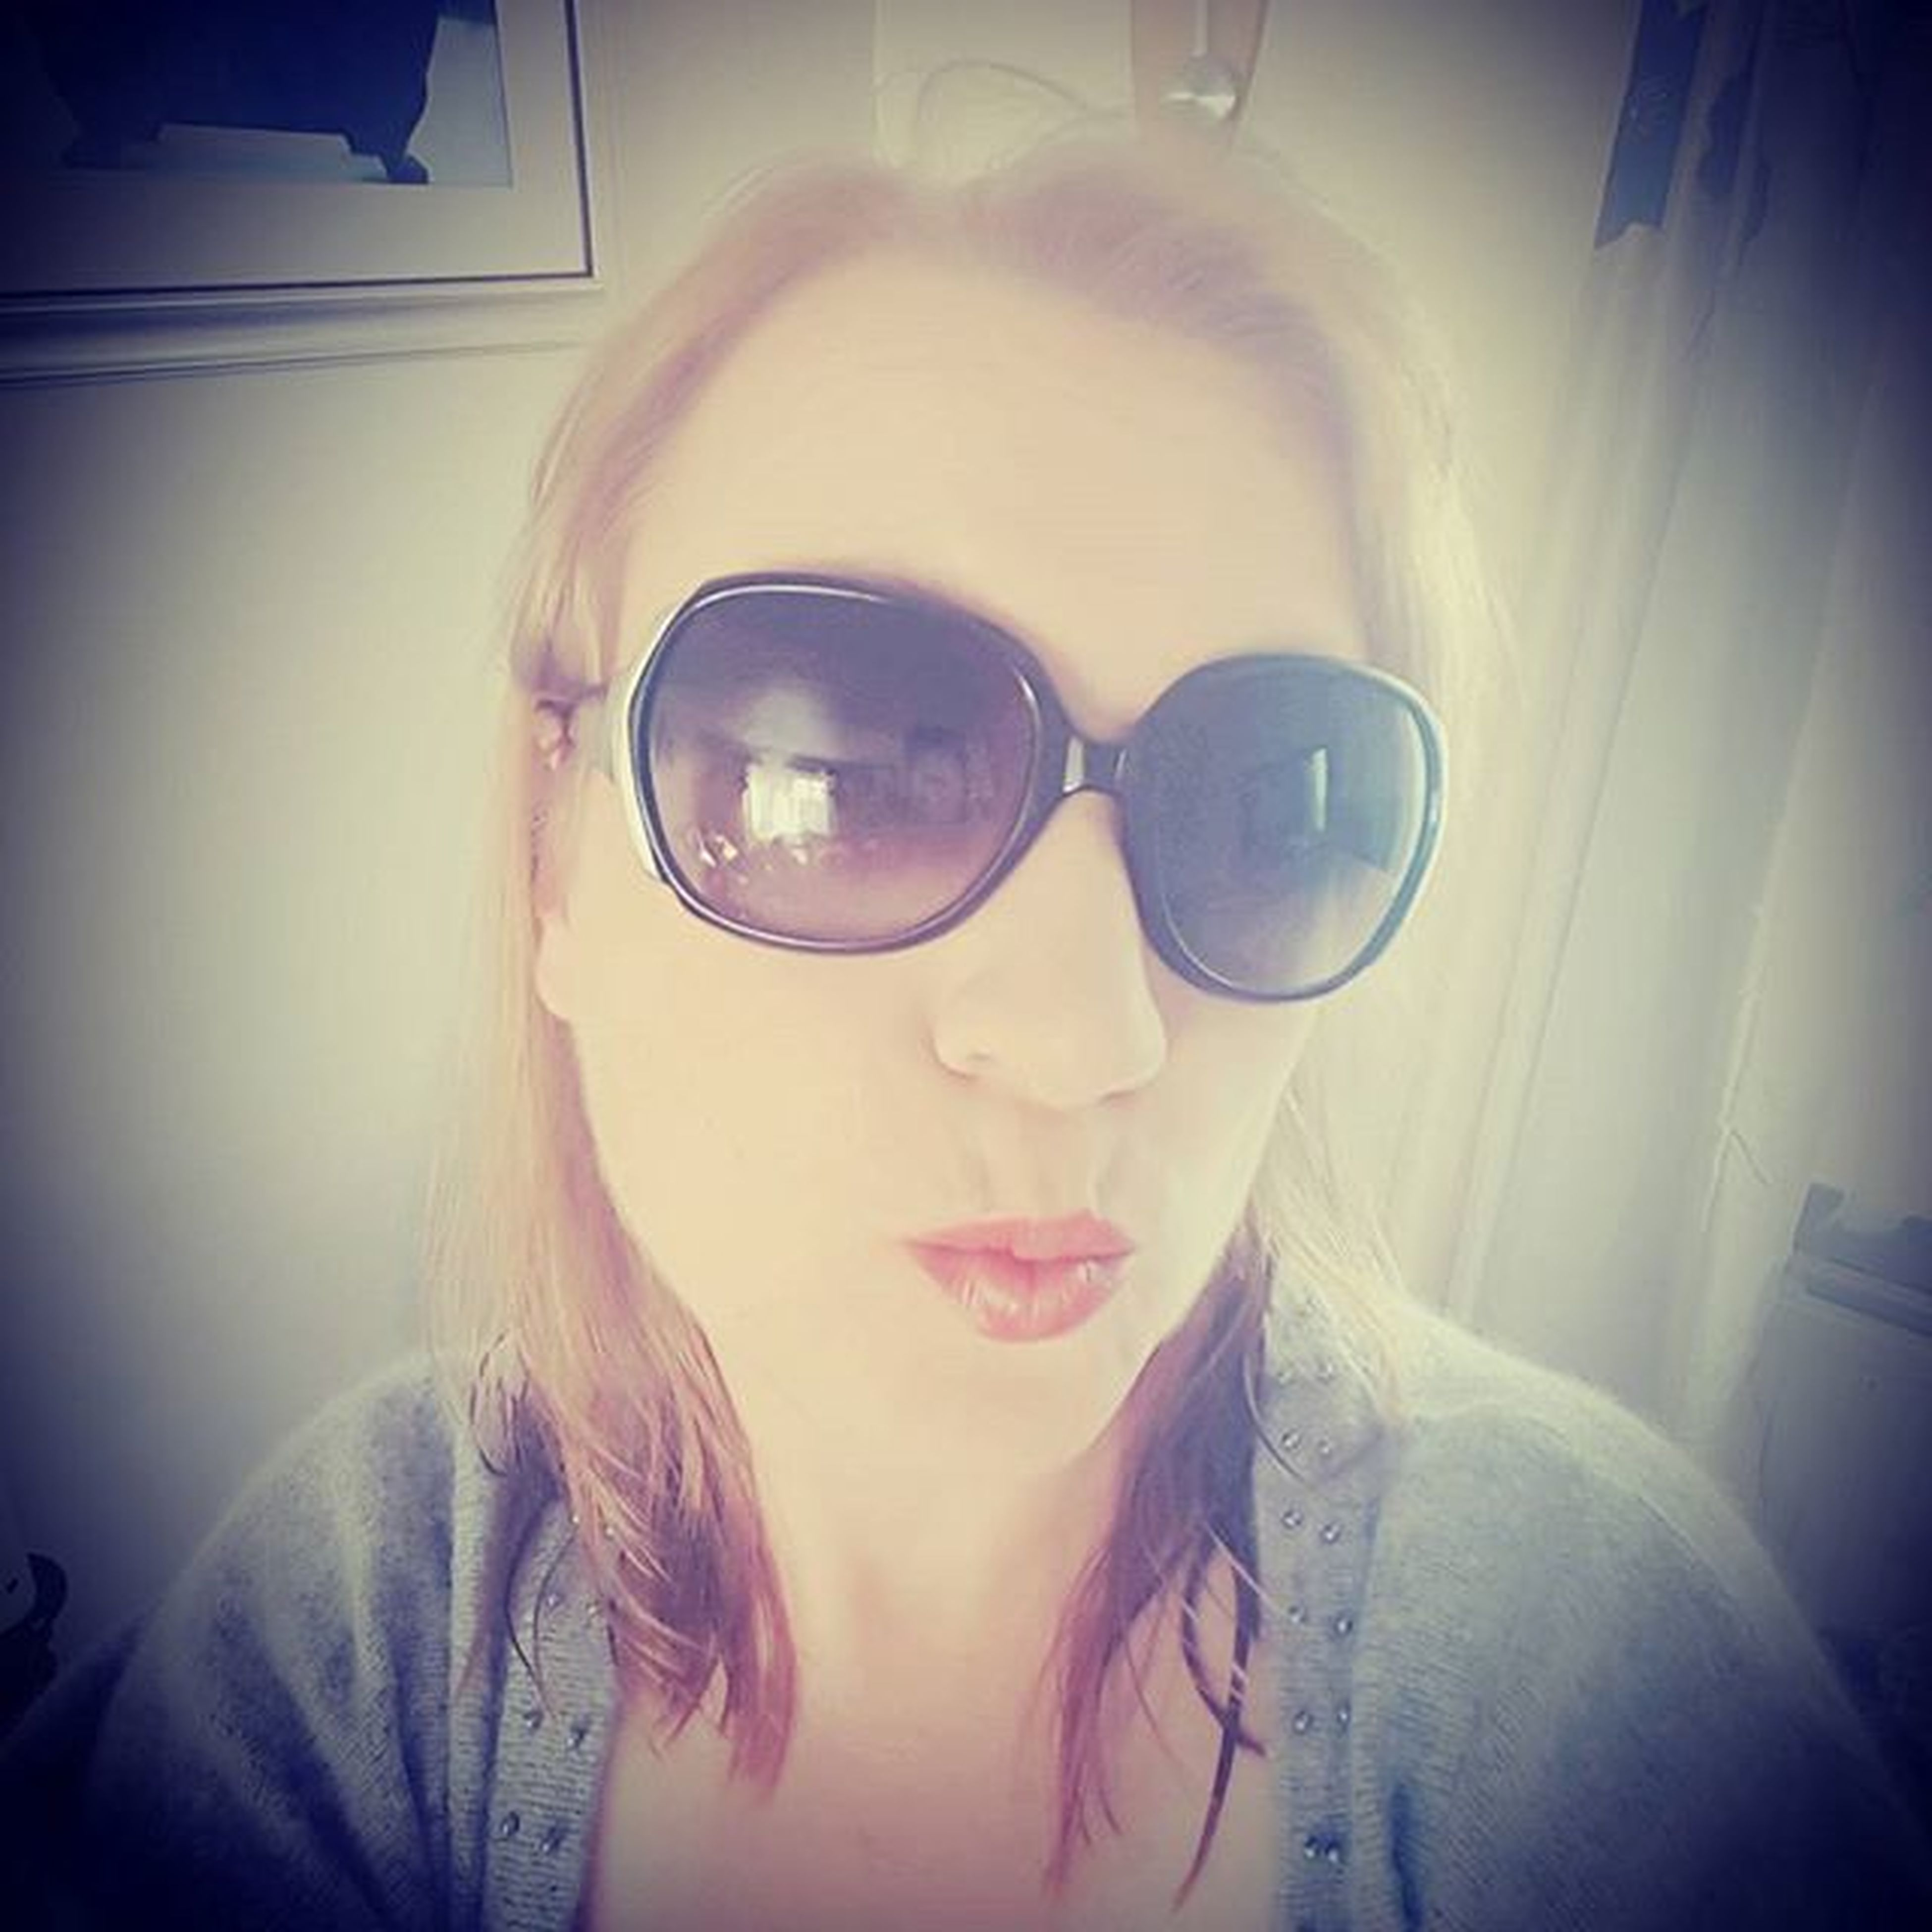 Overexposure and Sunglasses is handy to hide Brokennose and Blackeyes still Gorgeous Selfie Gigtime